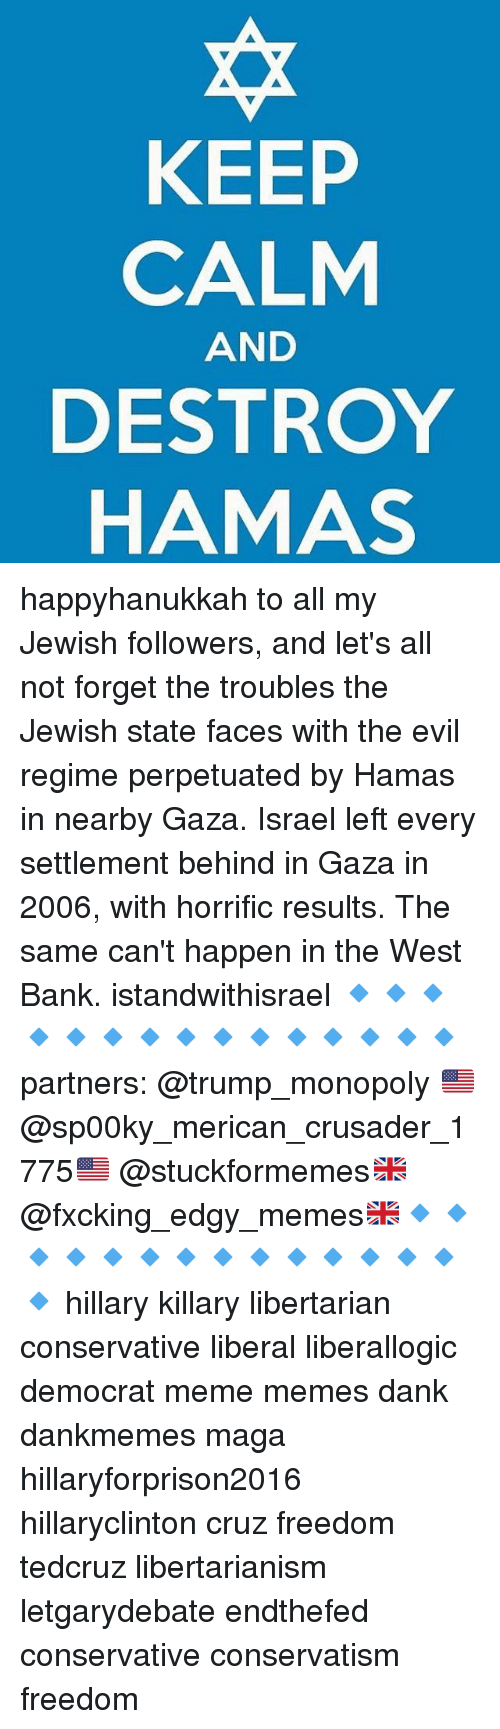 Democrat Memes: KEEP  CALM  AND  DESTROY  HAMAS happyhanukkah to all my Jewish followers, and let's all not forget the troubles the Jewish state faces with the evil regime perpetuated by Hamas in nearby Gaza. Israel left every settlement behind in Gaza in 2006, with horrific results. The same can't happen in the West Bank. istandwithisrael 🔹🔹🔹🔹🔹🔹🔹🔹🔹🔹🔹🔹🔹🔹🔹partners: @trump_monopoly 🇺🇸@sp00ky_merican_crusader_1775🇺🇸 @stuckformemes🇬🇧 @fxcking_edgy_memes🇬🇧🔹🔹🔹🔹🔹🔹🔹🔹🔹🔹🔹🔹🔹🔹🔹 hillary killary libertarian conservative liberal liberallogic democrat meme memes dank dankmemes maga hillaryforprison2016 hillaryclinton cruz freedom tedcruz libertarianism letgarydebate endthefed conservative conservatism freedom